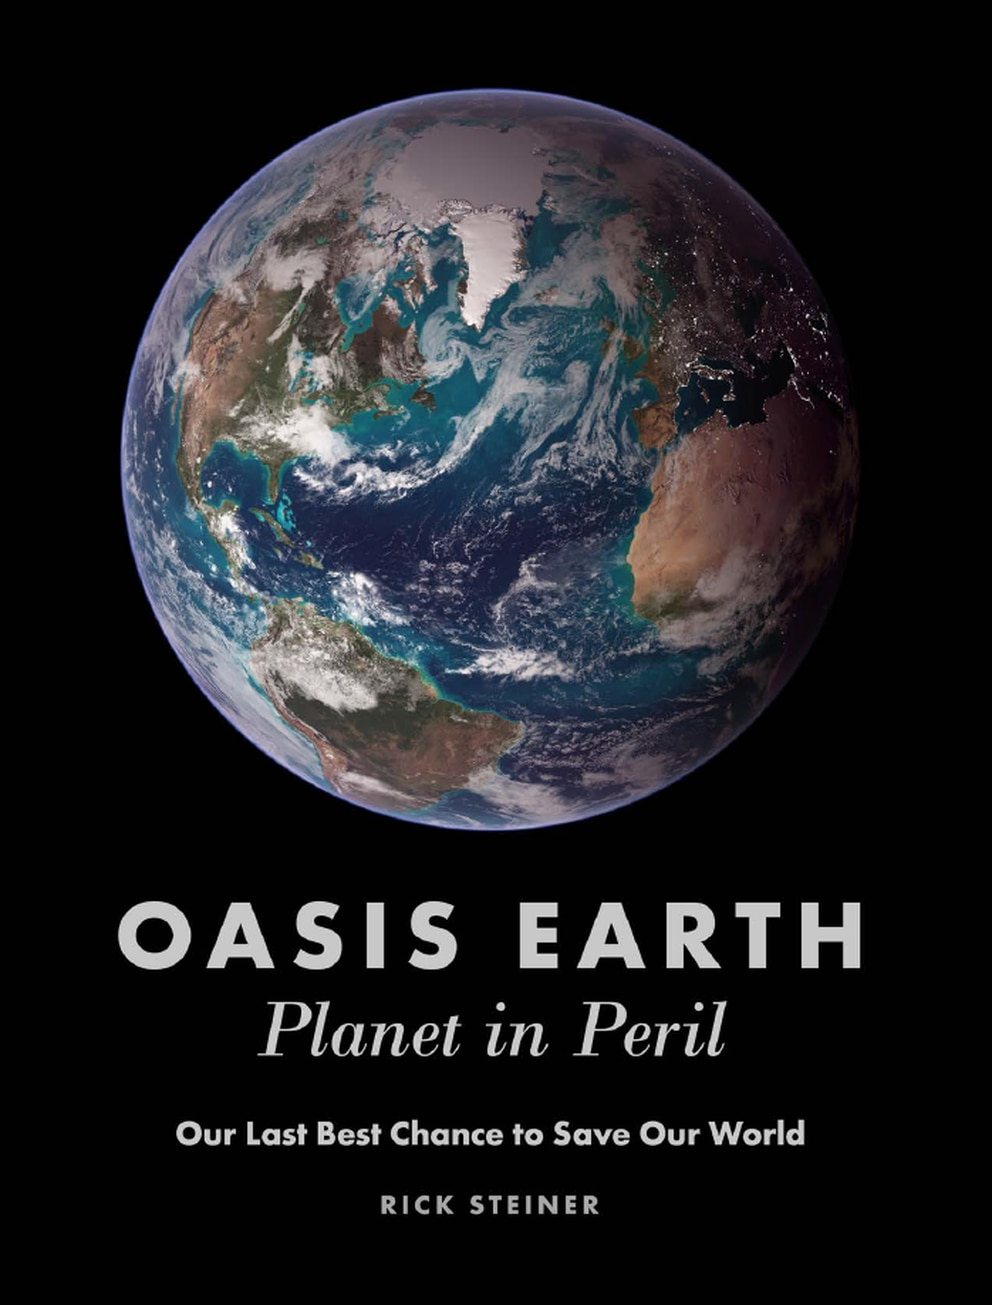 Oasis Earth: Planet in Peril